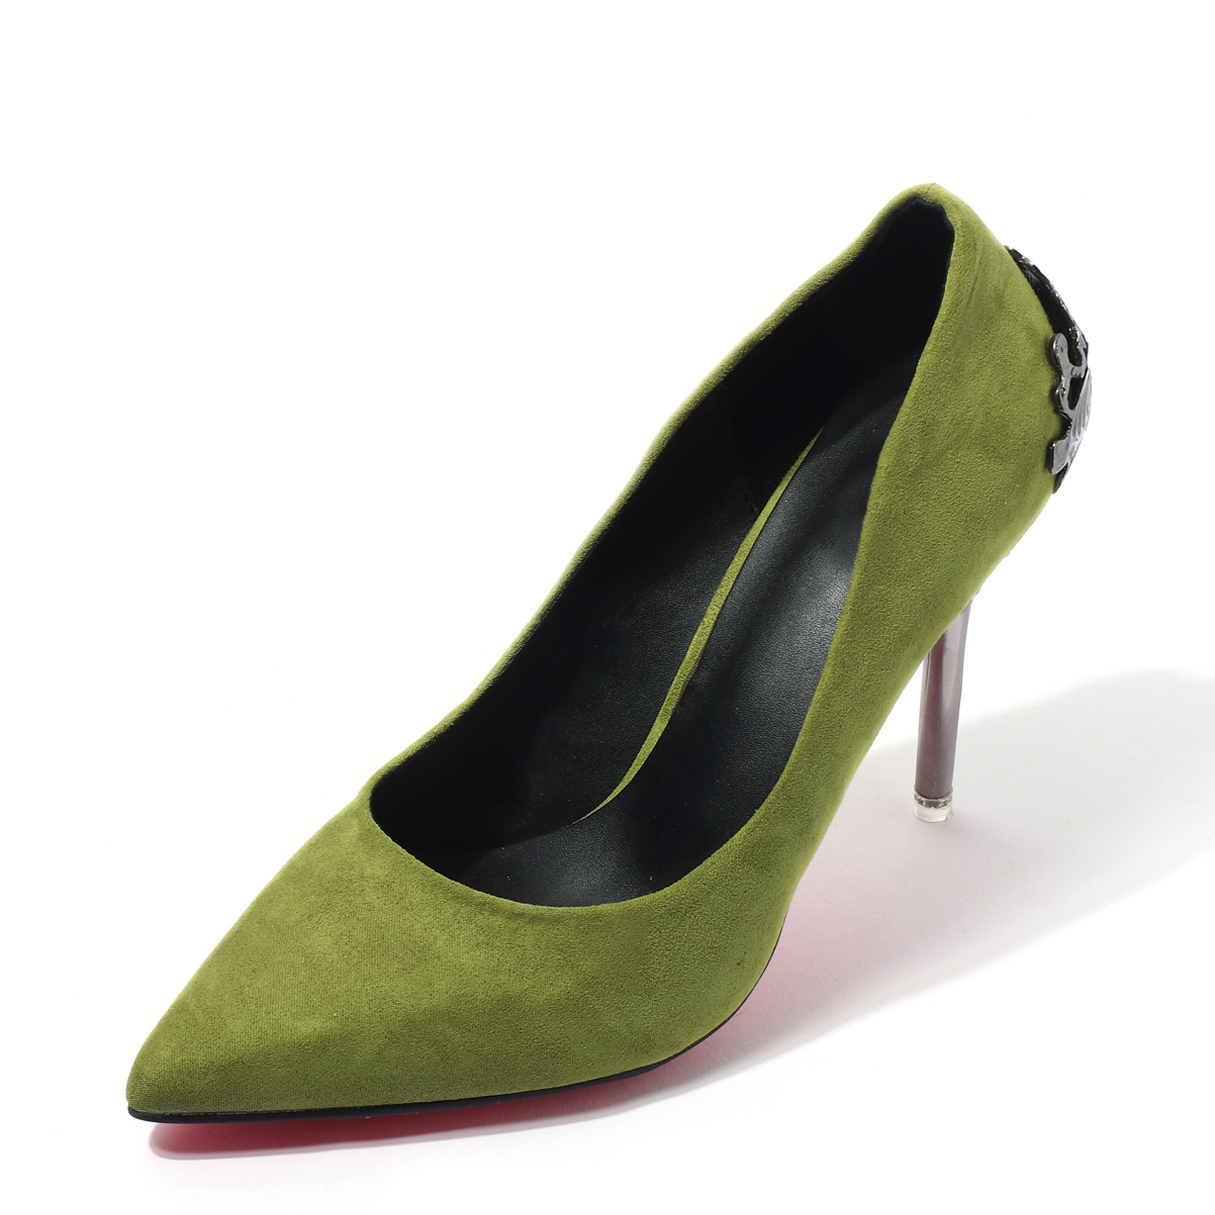 Green Wedding Frosted Suede Stiletto Solid Color Pumps spring autumn fashion pointed toe high heels solid causal women pumps shoes faux velvet female work pumps wedding shoes 302 1ve